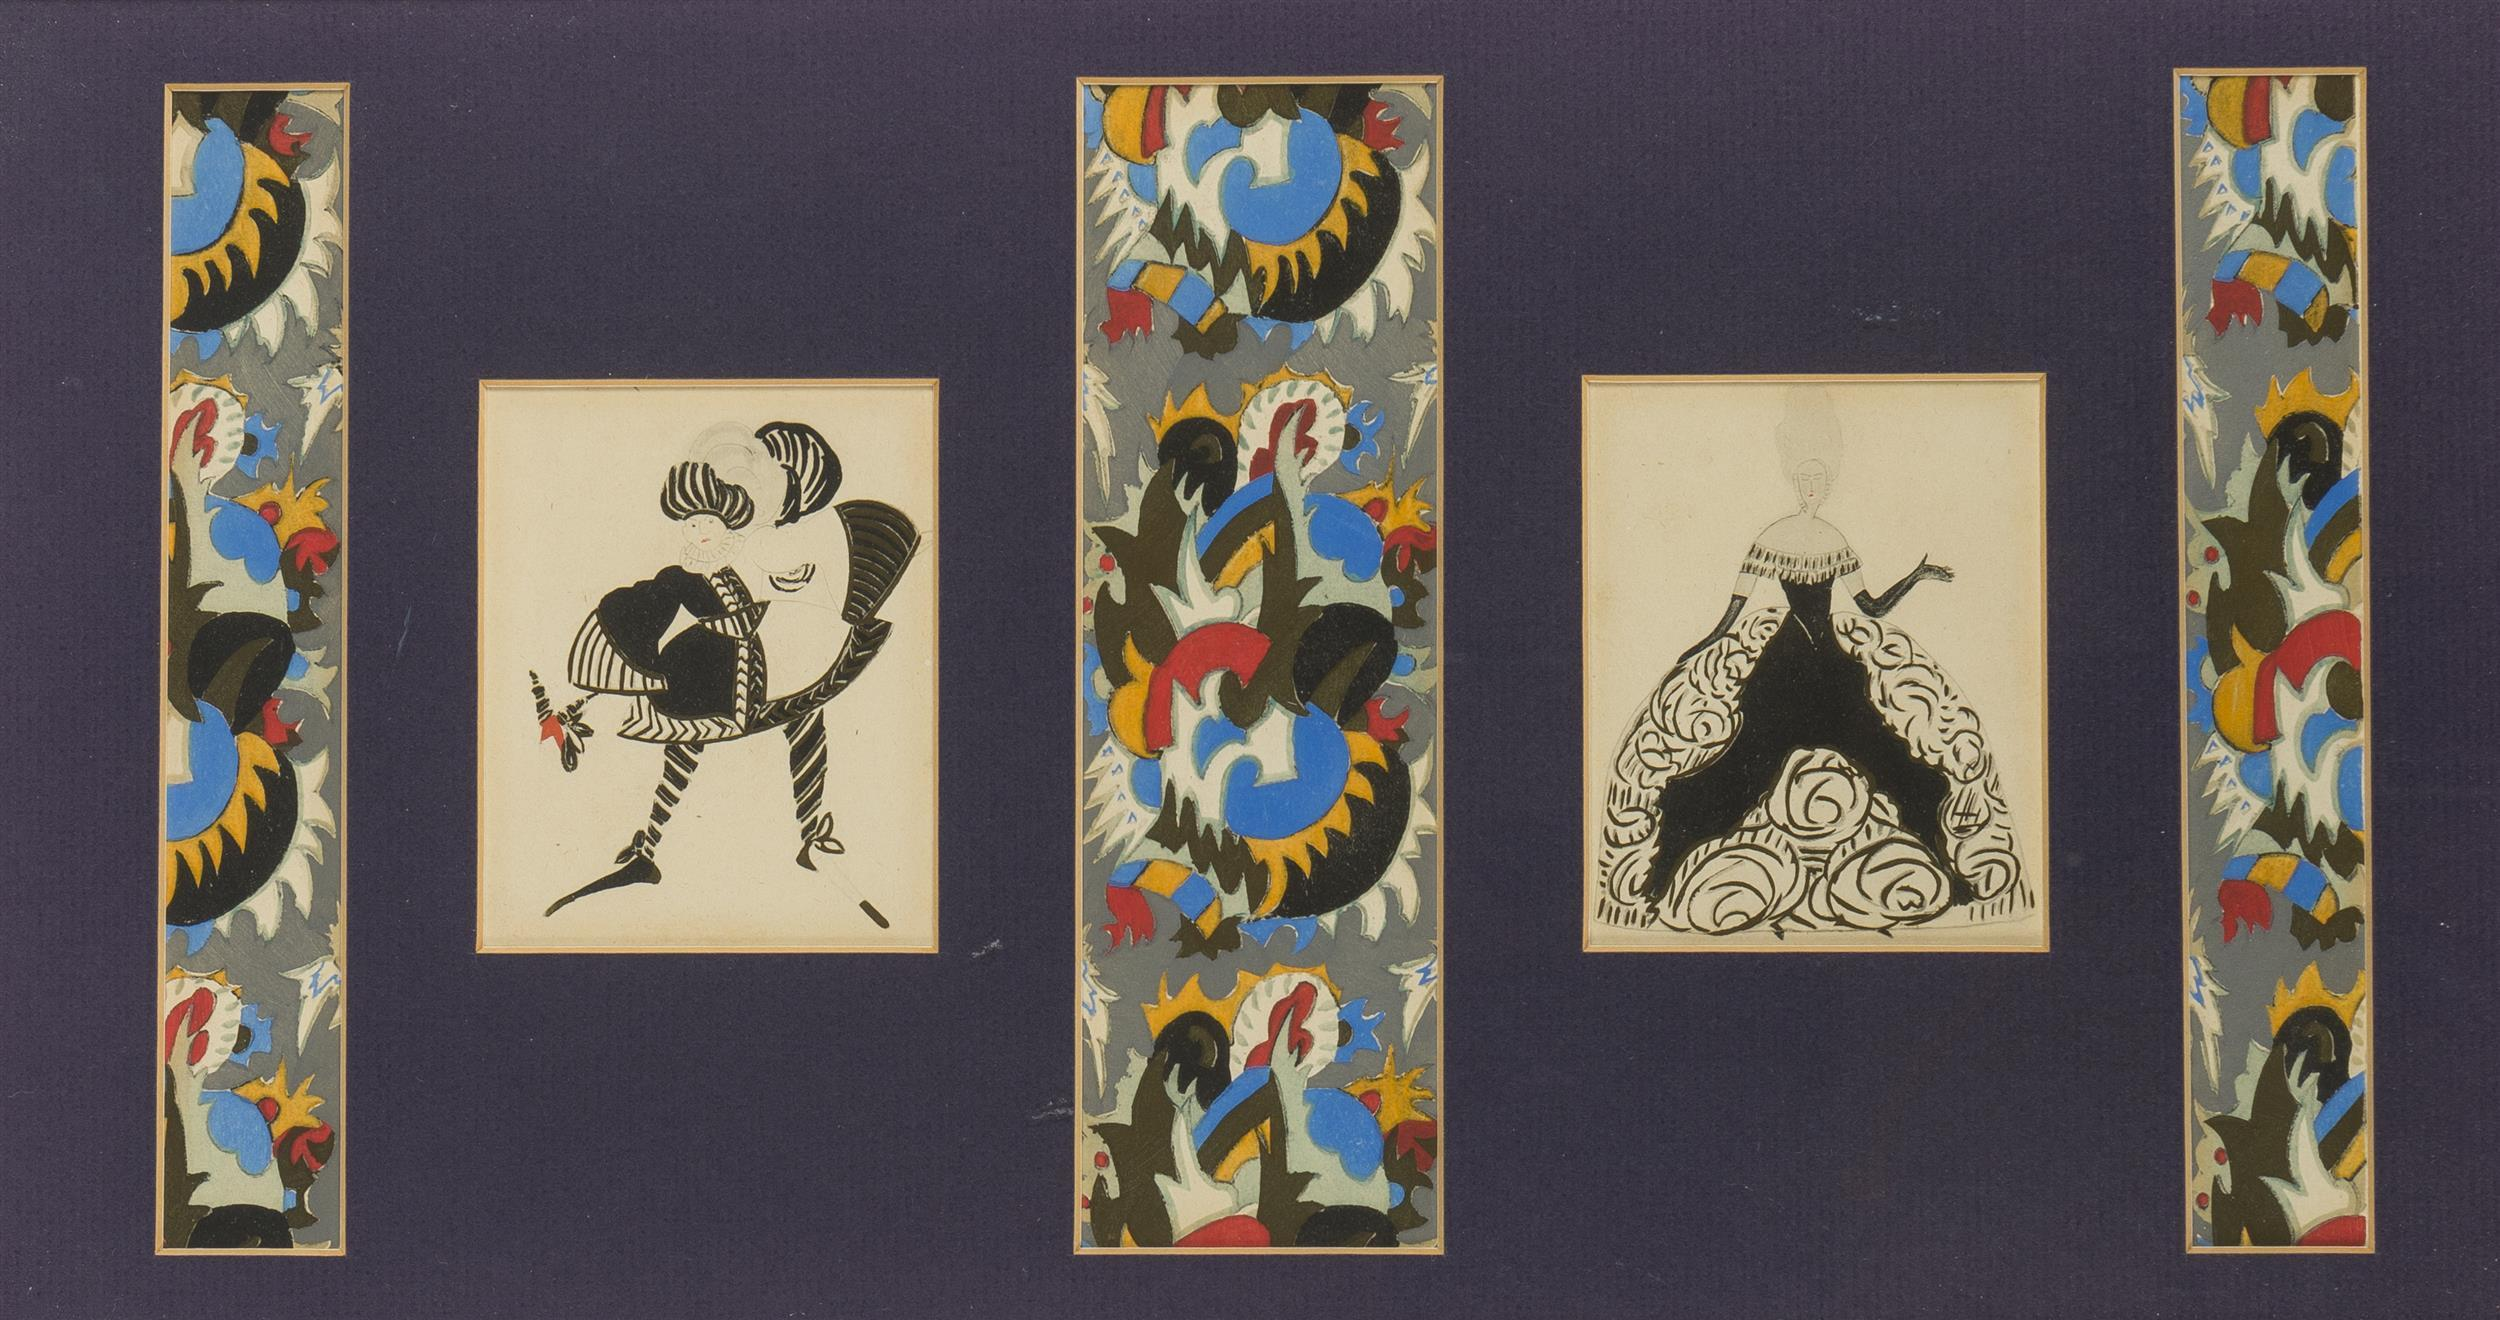 Simon Lissim, (1900-1981 New York, NY), Multiple paneled Costume/Set designs; five works in one frame, Gouache on paper under glass, Si